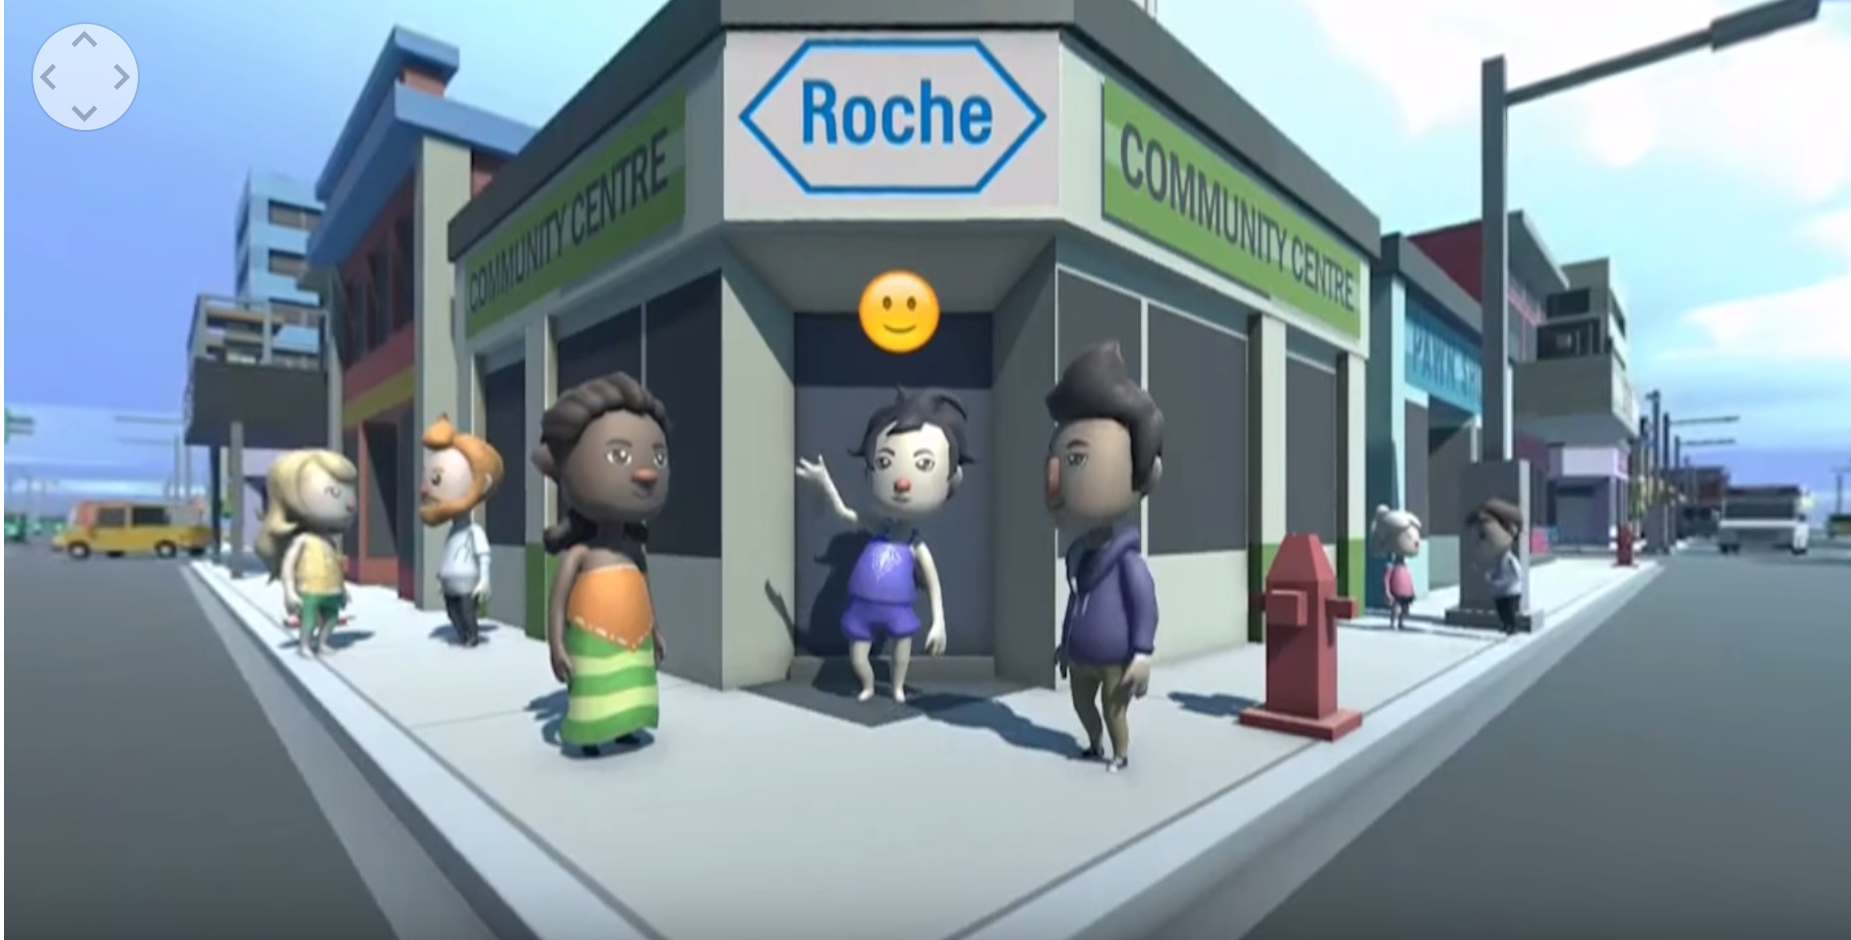 Roche Diabetes Mobile VR Introduction